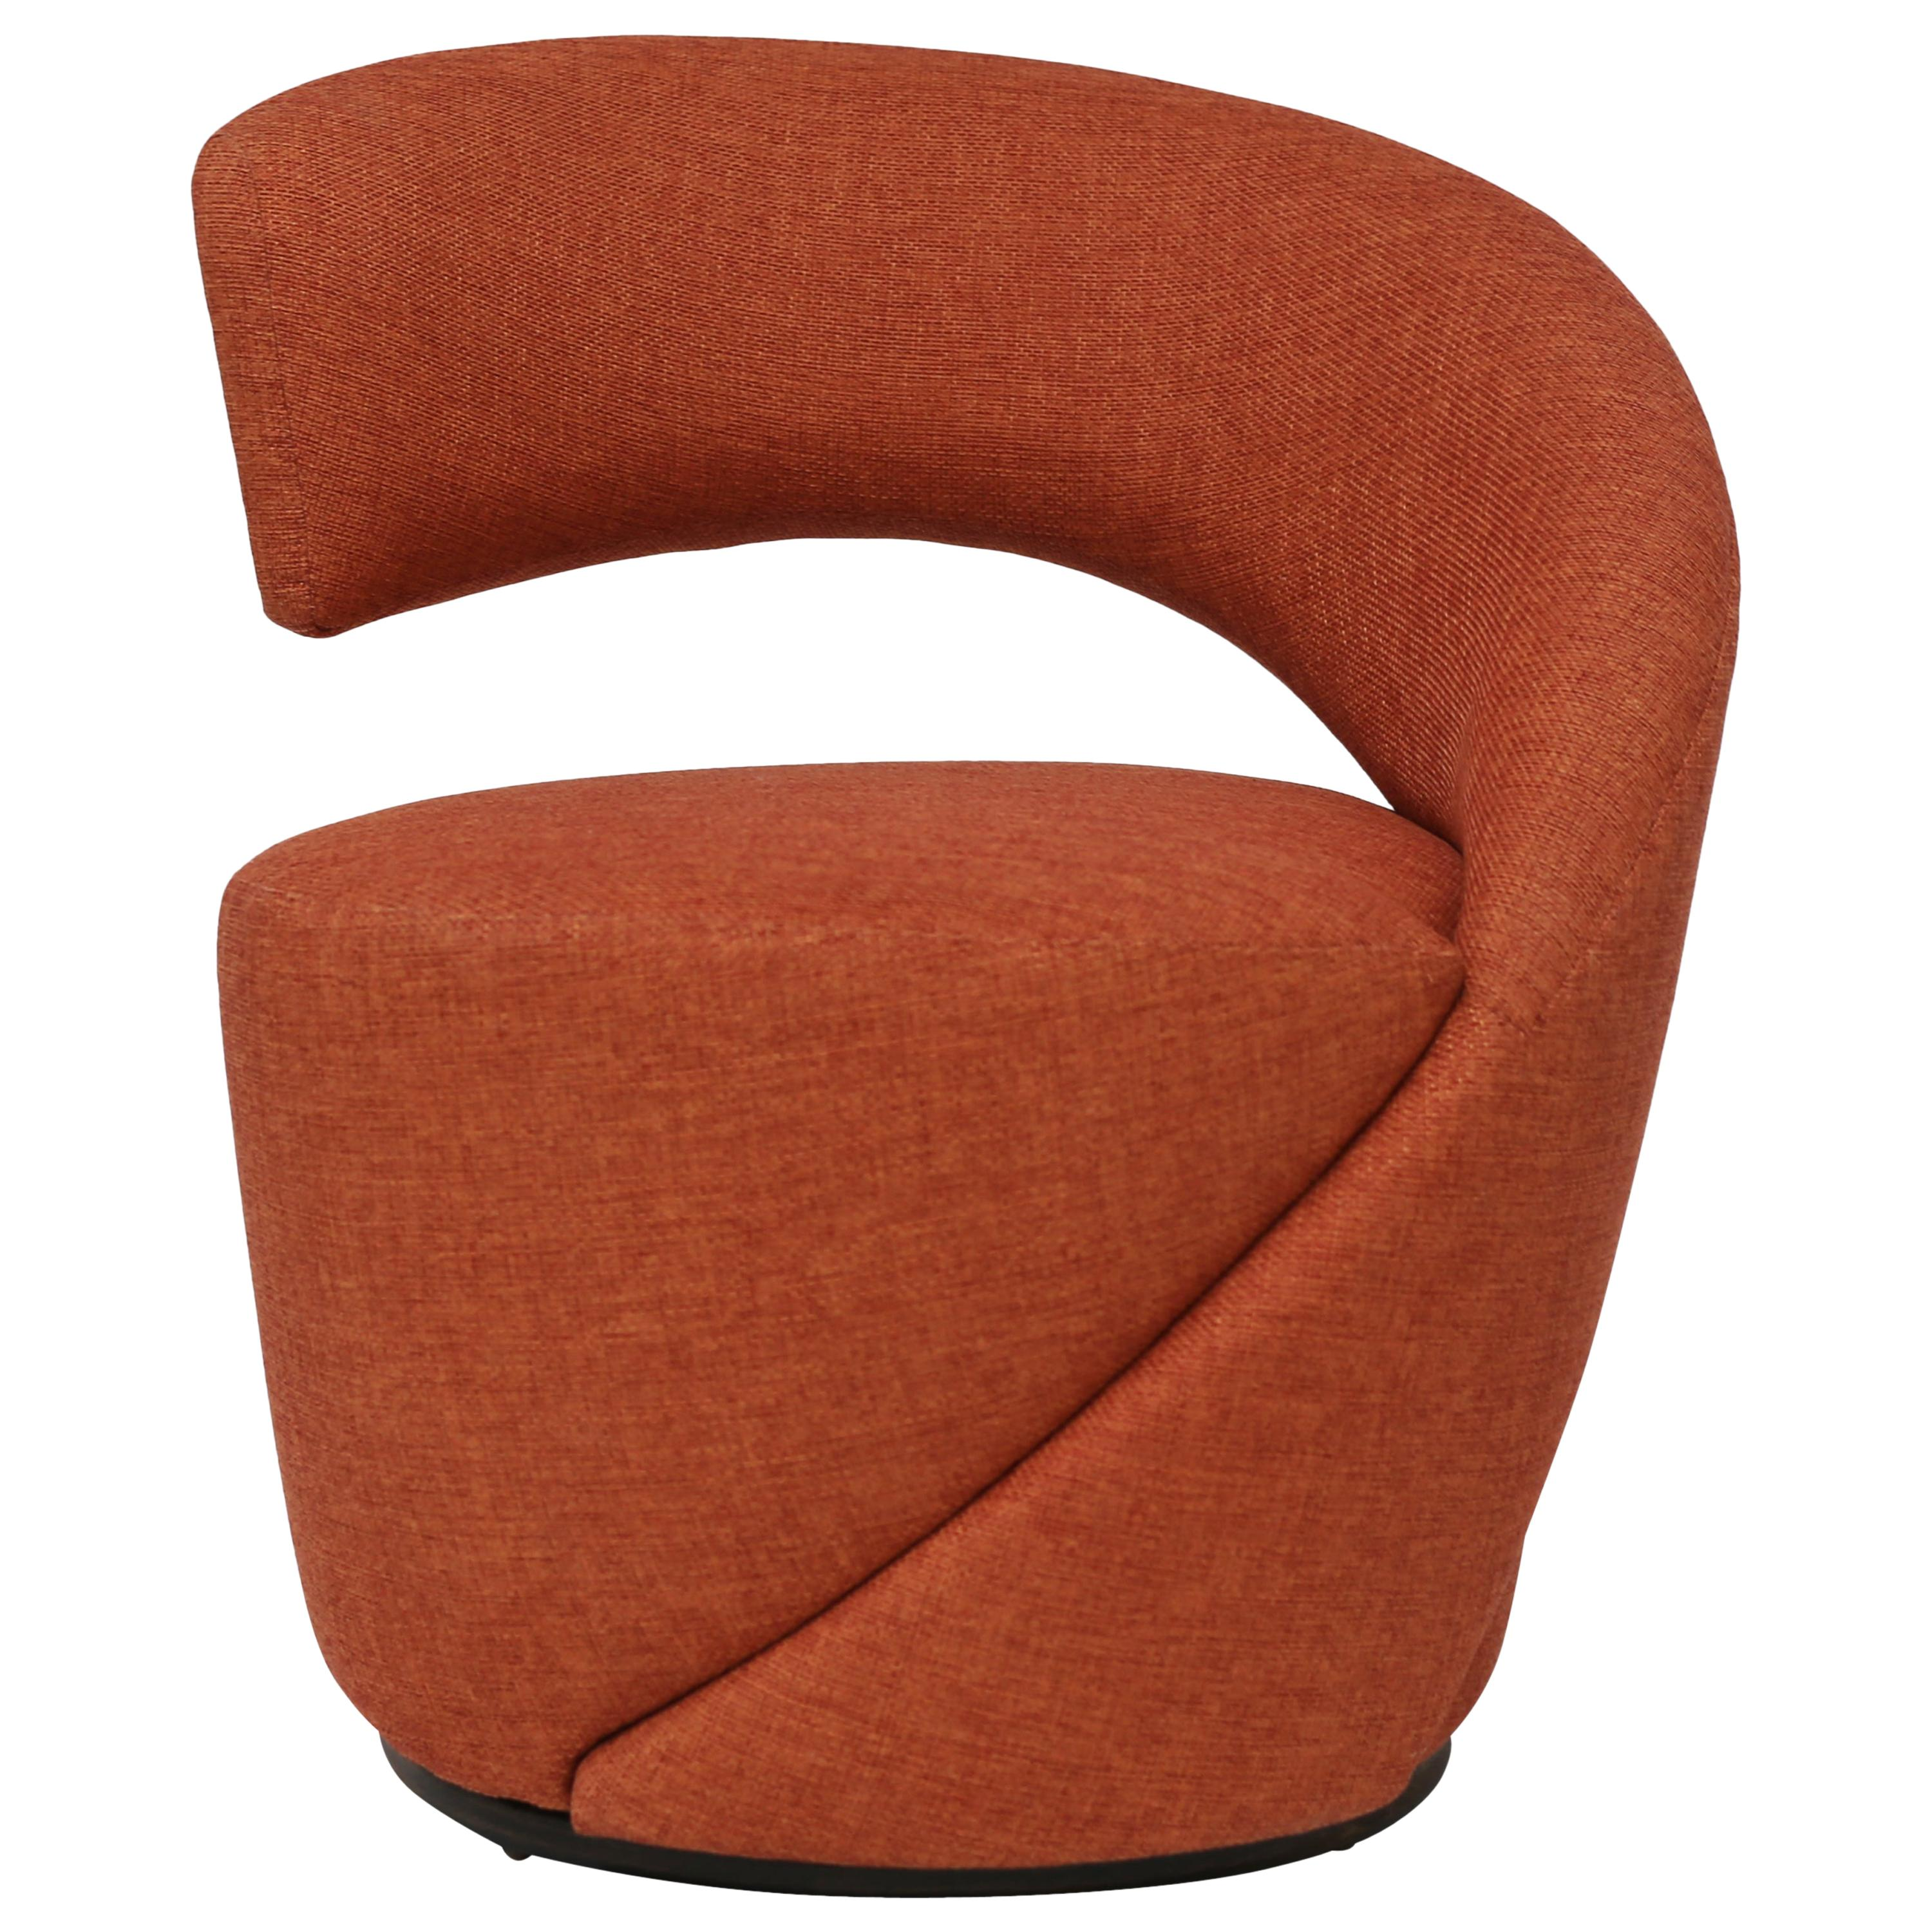 Modern Decorative Curved Club Chair and Ottoman Covered in Melon Fabric